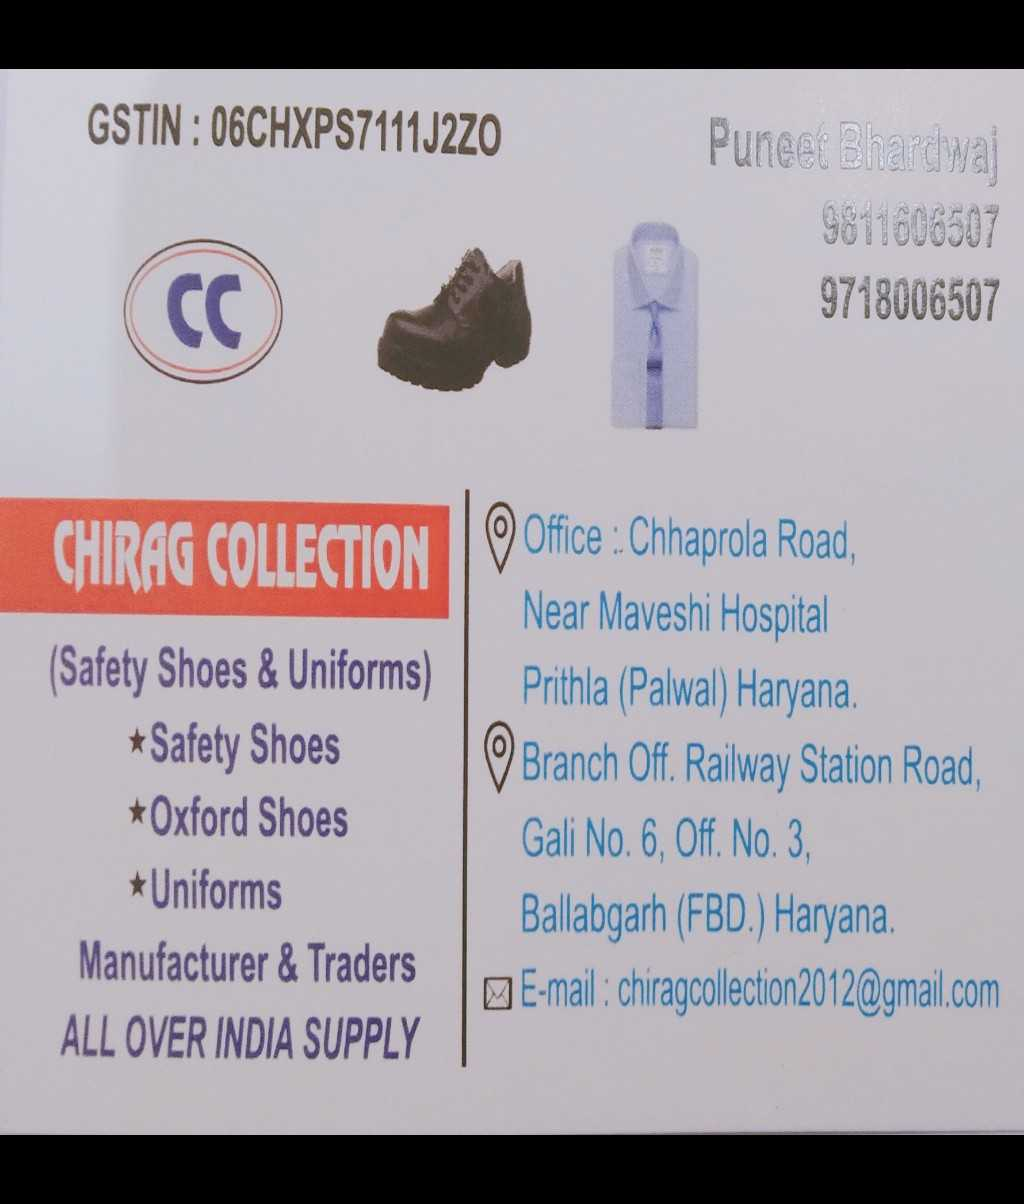 Chirag Collection